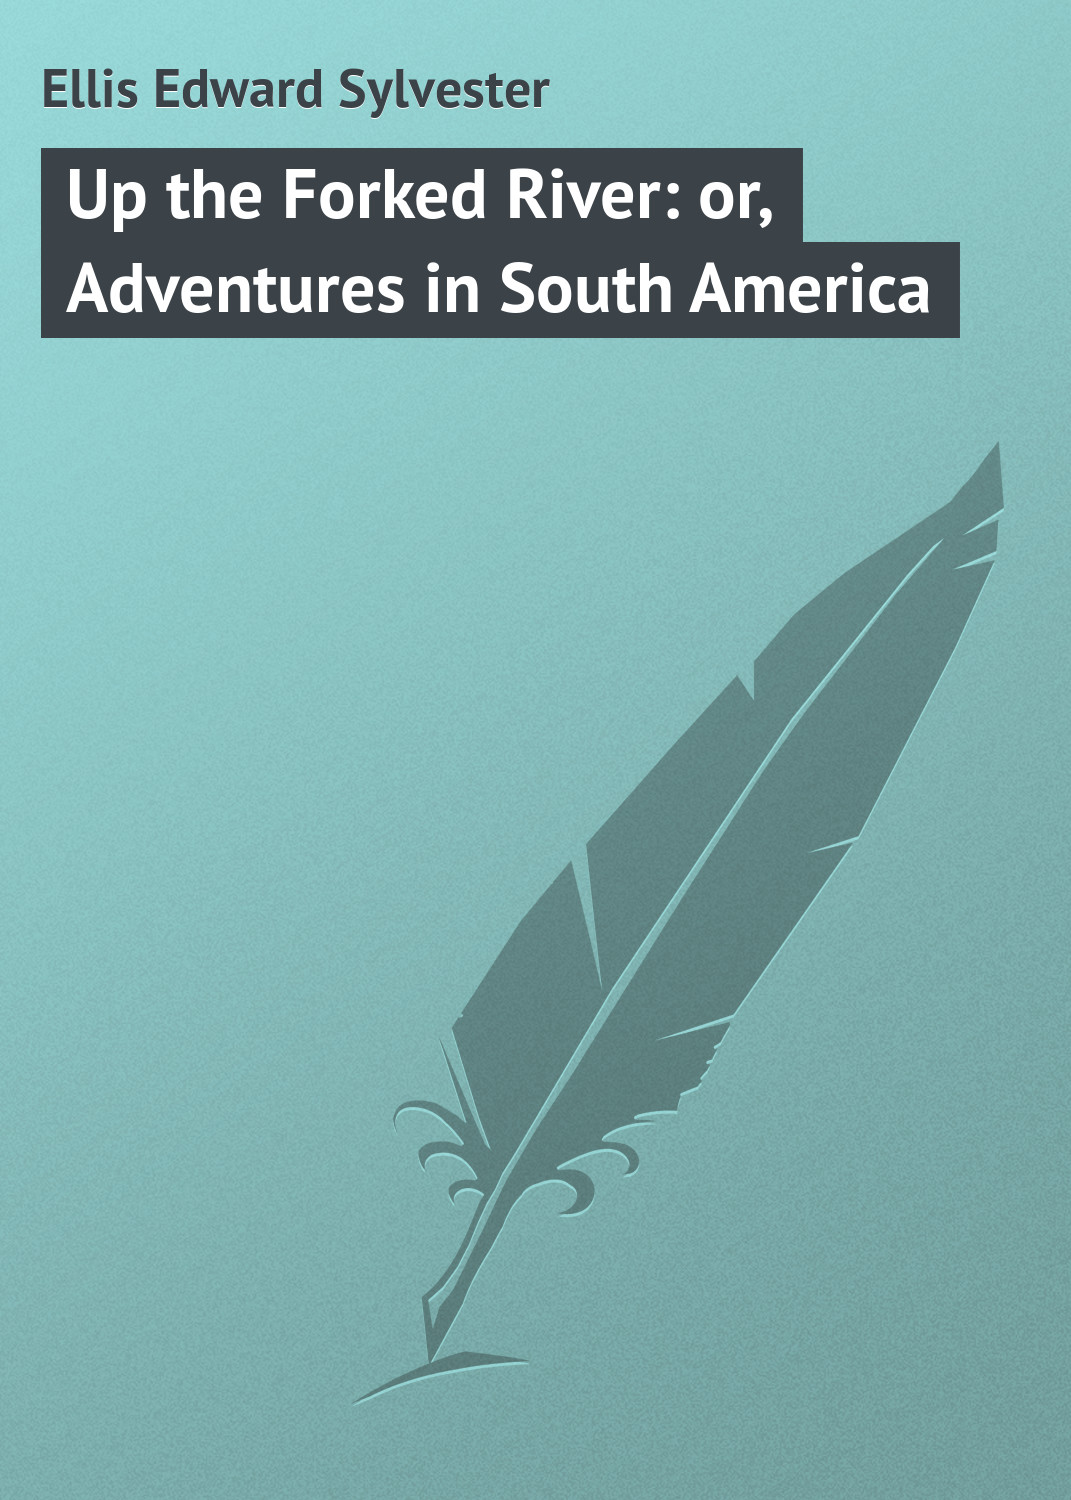 Ellis Edward Sylvester Up the Forked River: or, Adventures in South America